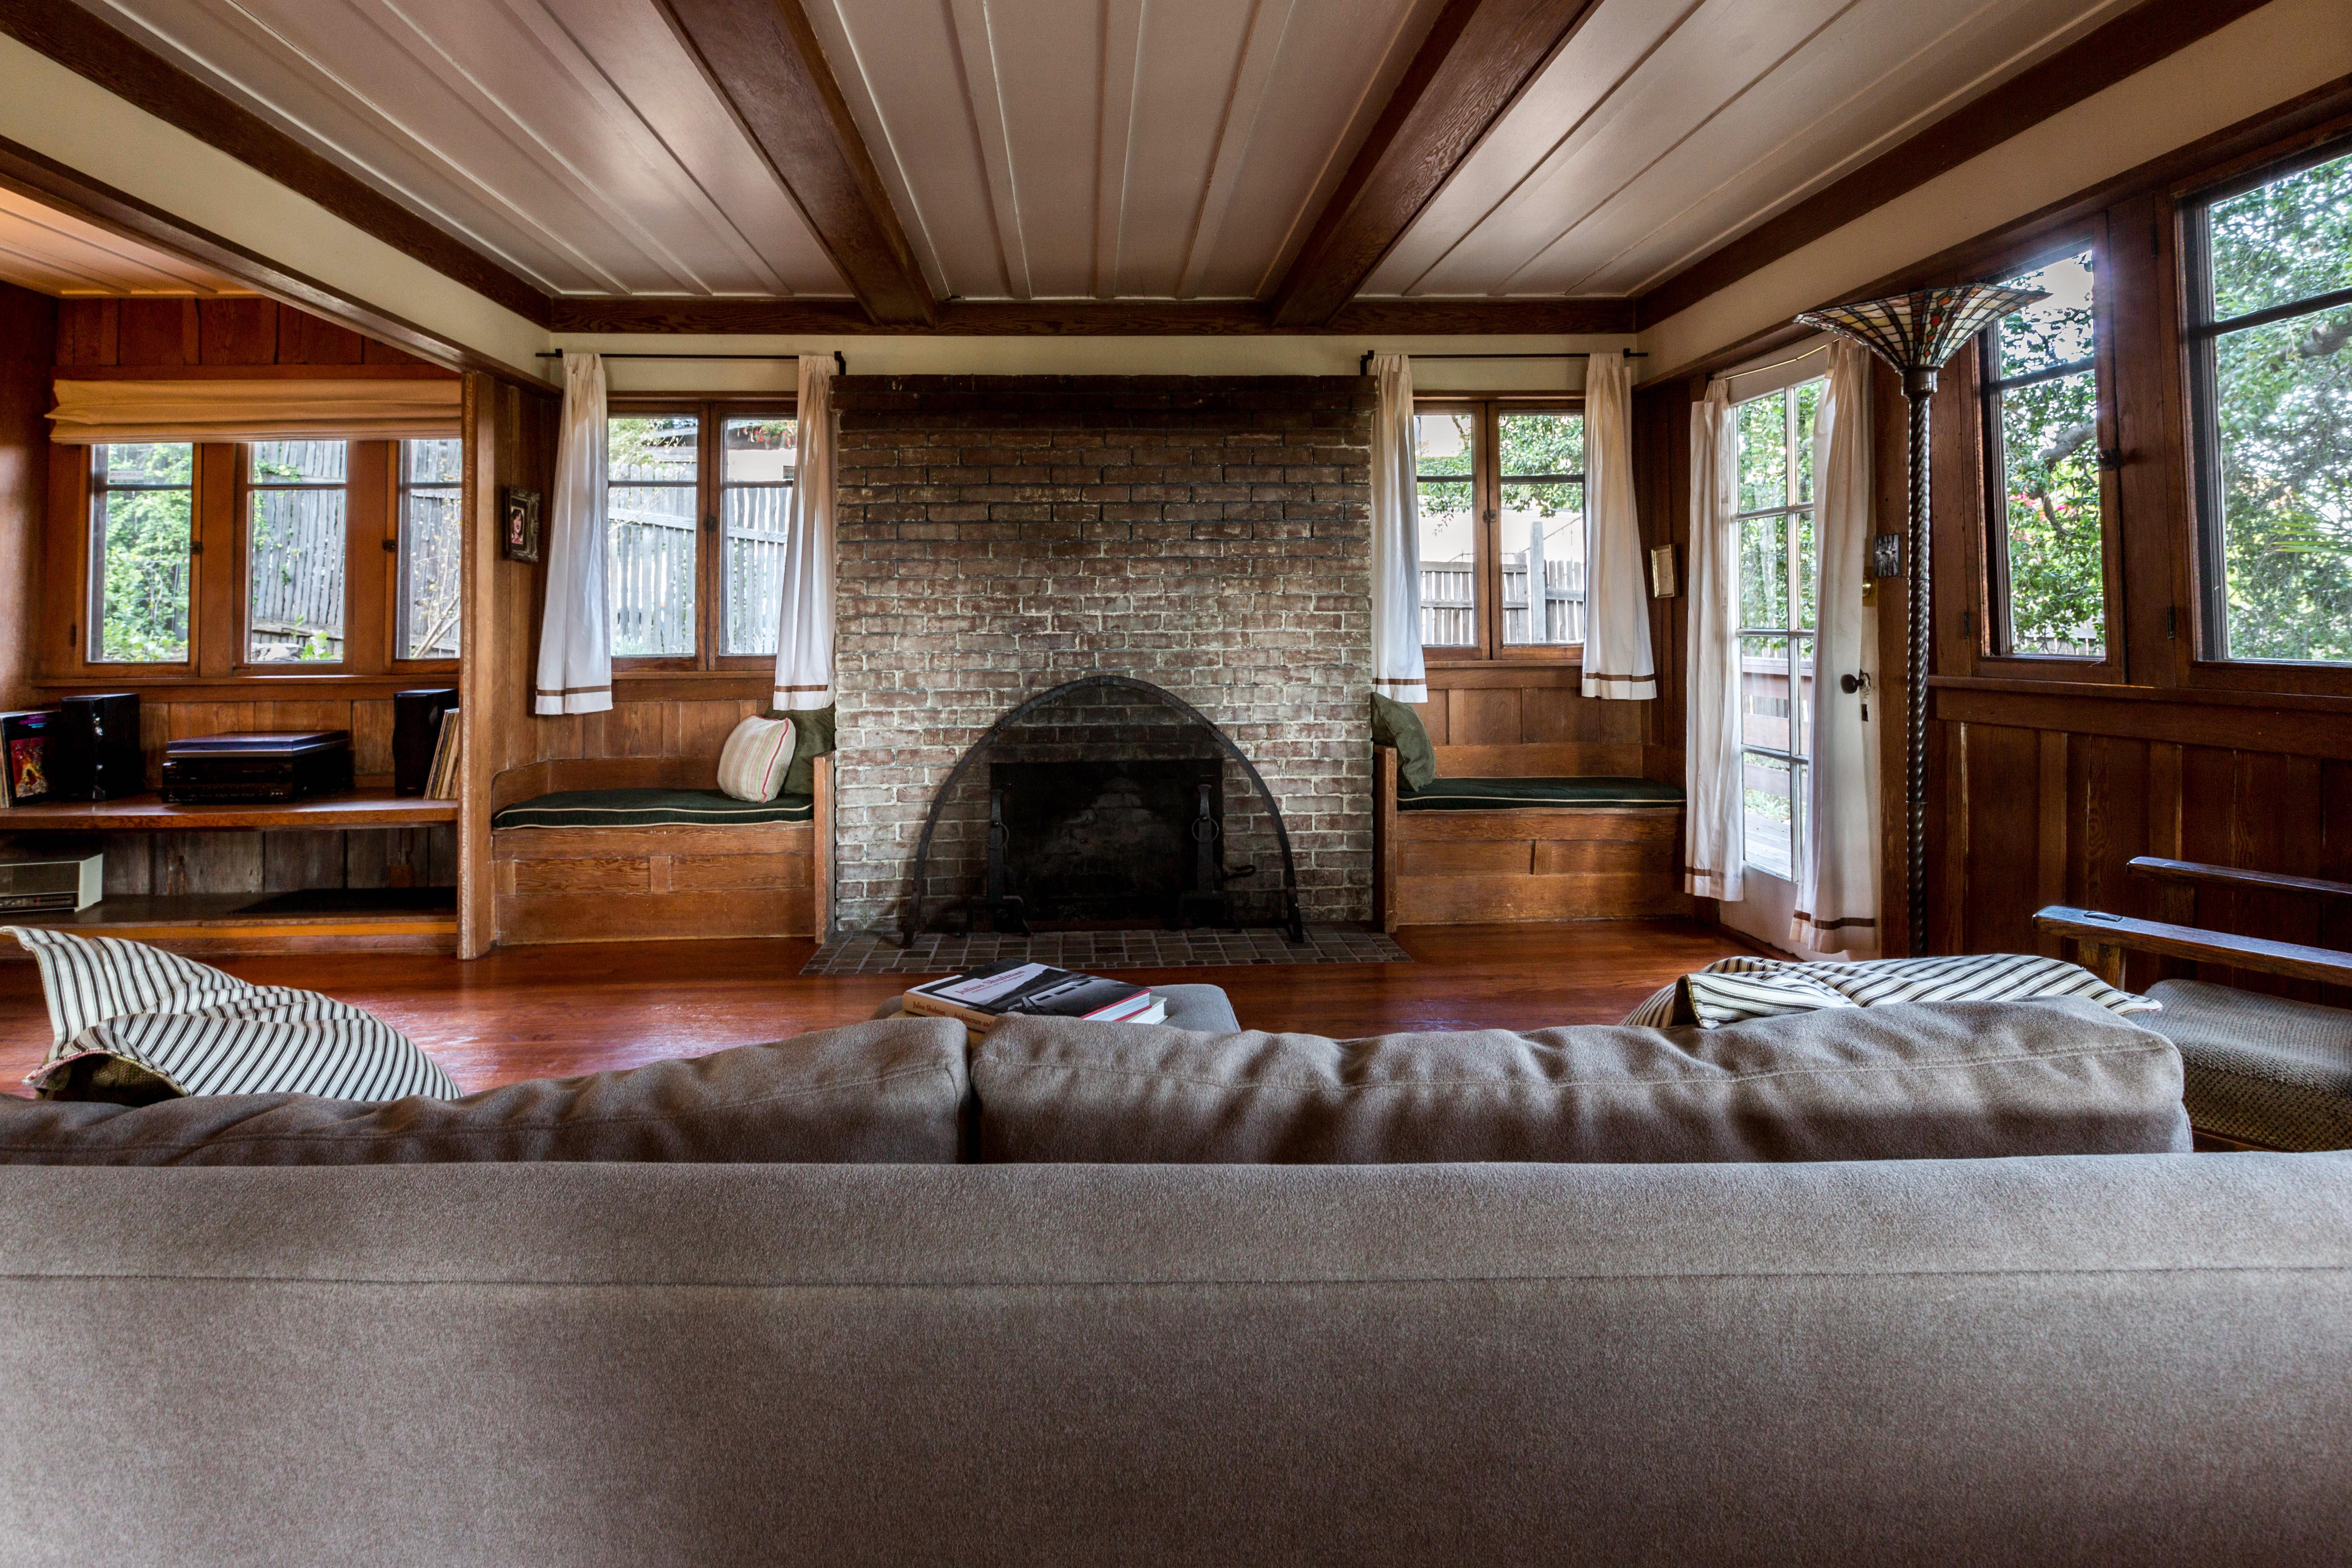 for 998k a 1914 echo park home filled with original woodwork